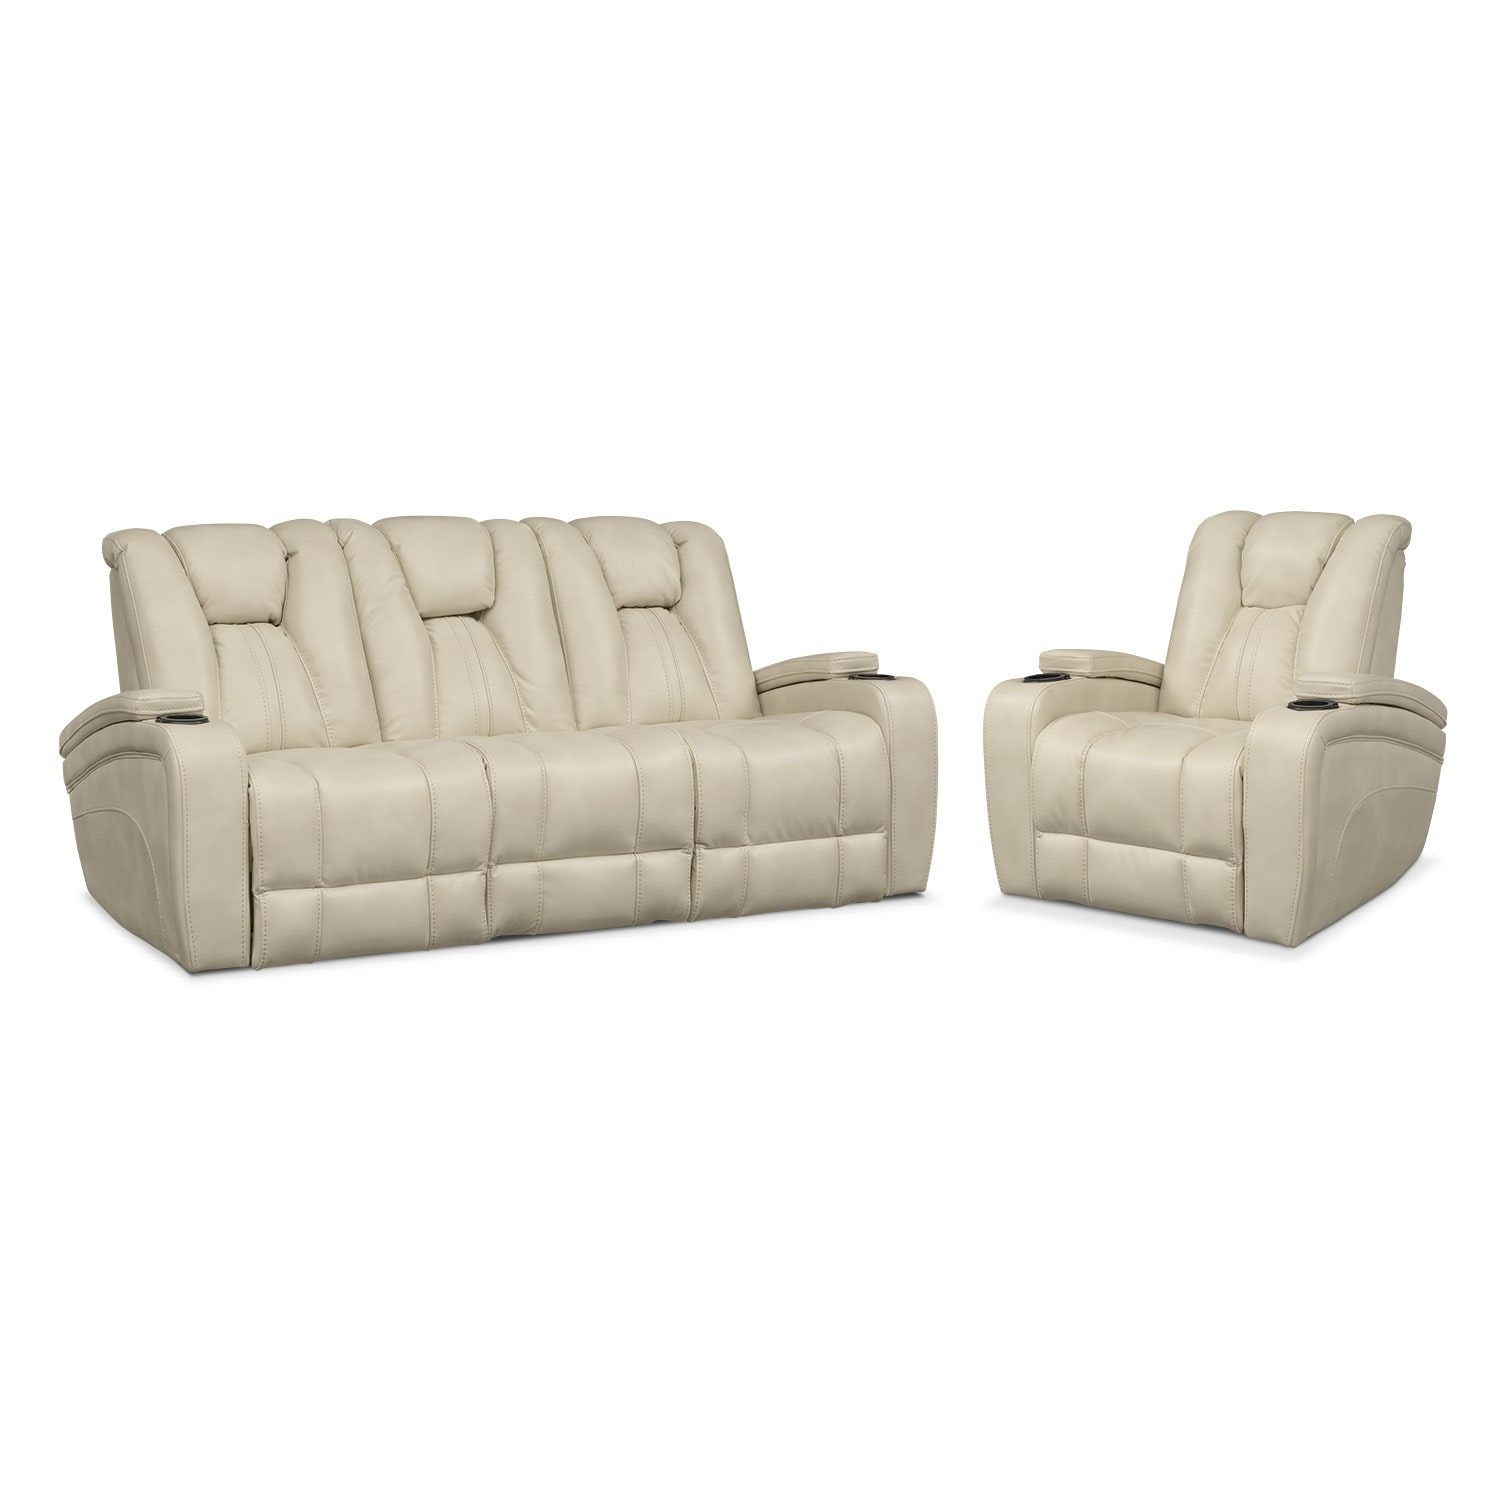 Pulsar Dual Power Reclining Sofa and Power Recliner Set - Cream  sc 1 st  Value City Furniture : power reclining sofa set - islam-shia.org